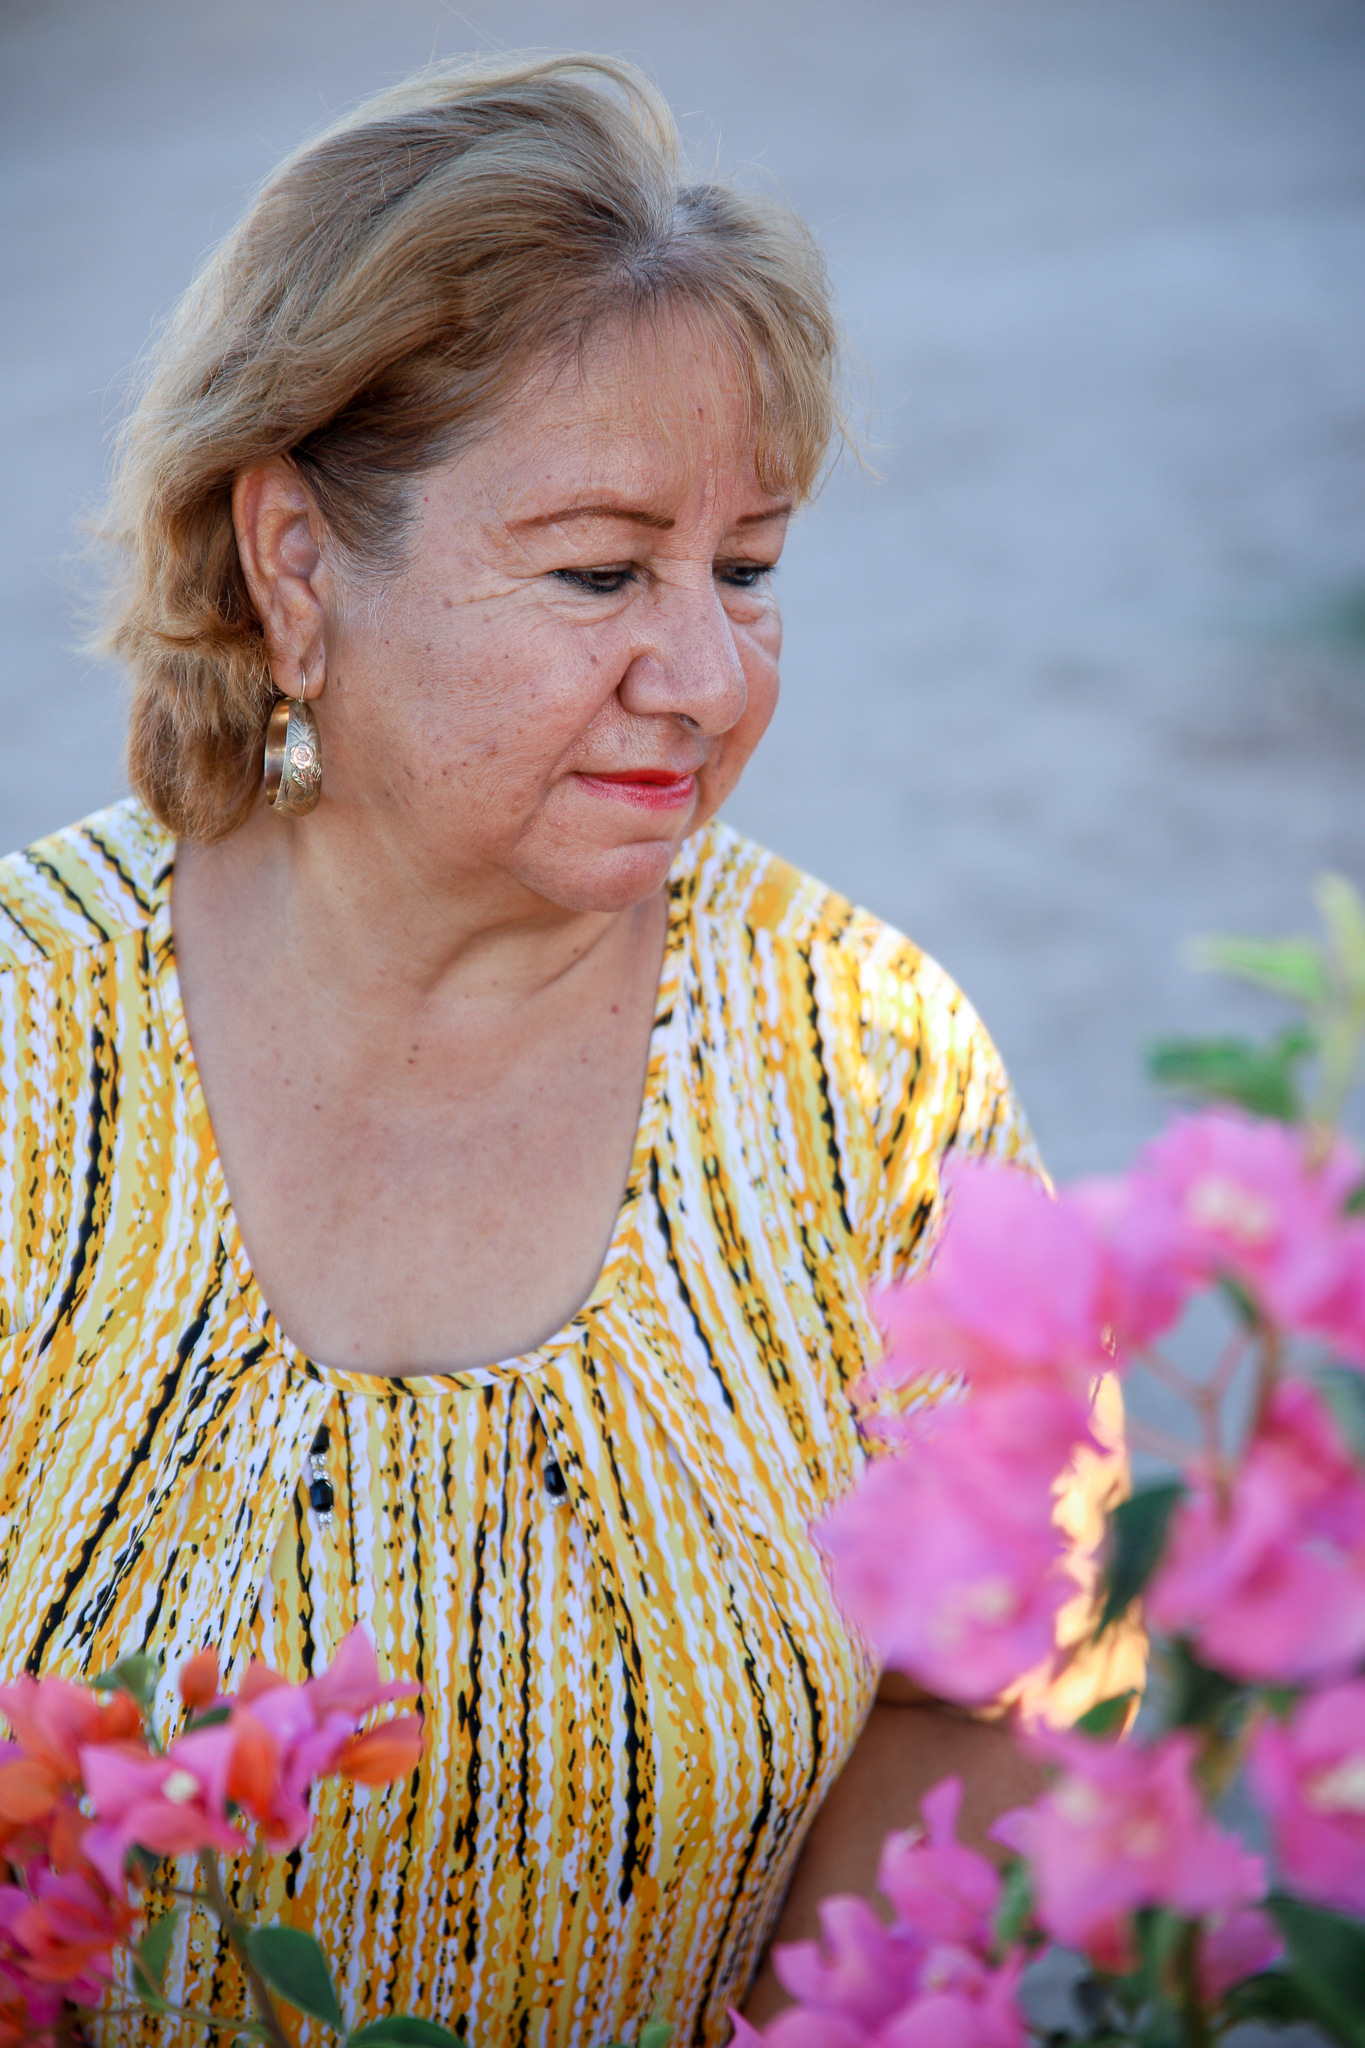 What to look for when Choosing Medicare Coverage for Older Adults #AgeWell